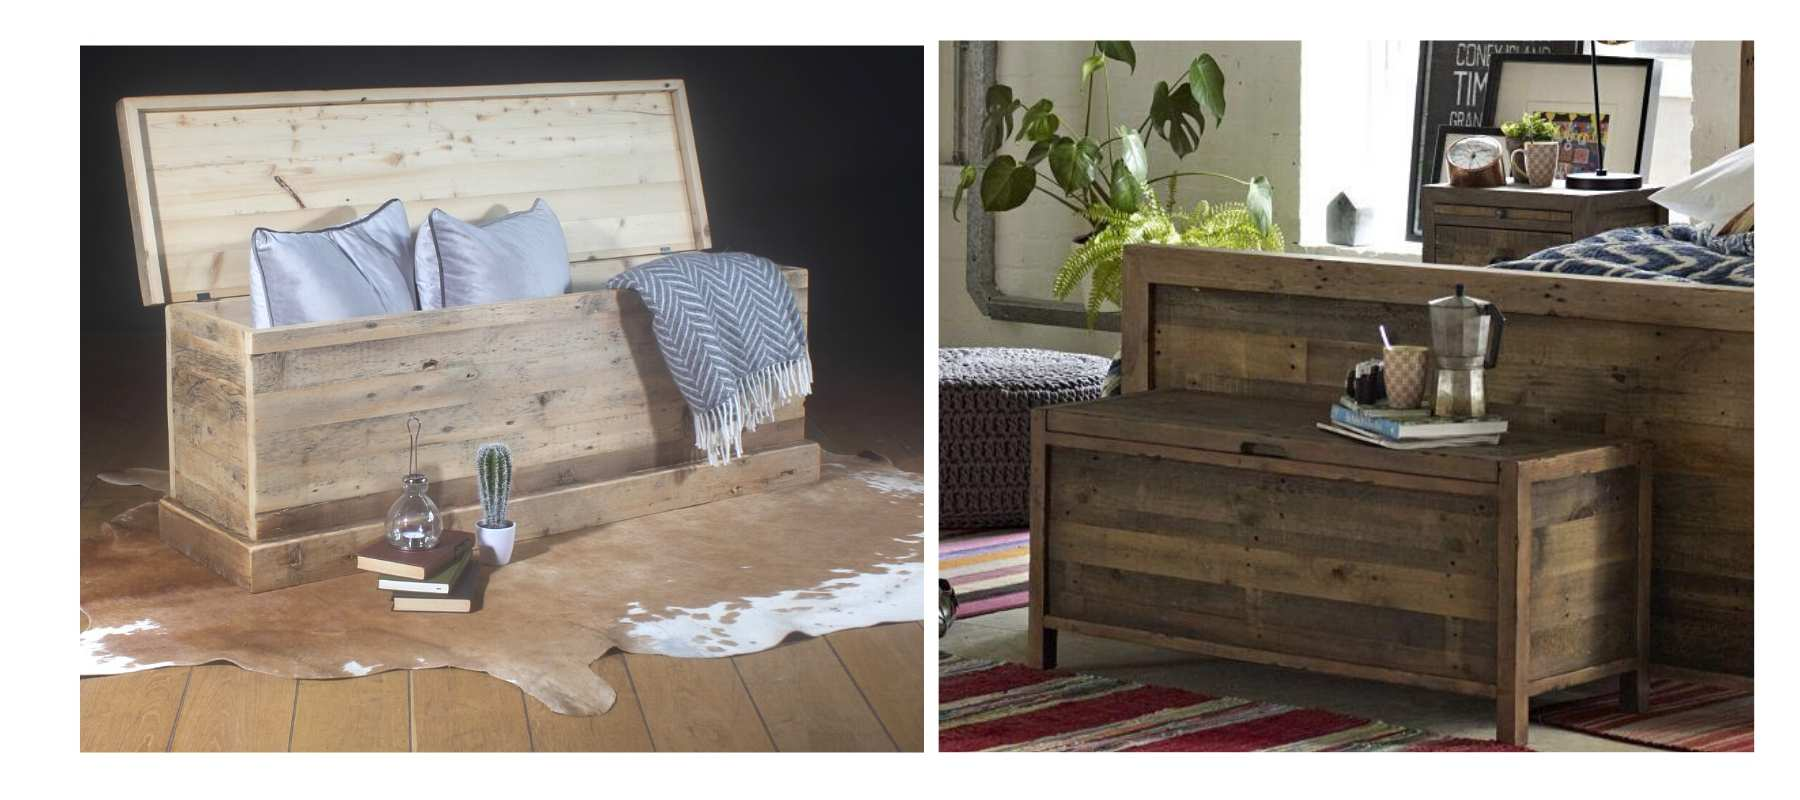 Beam Blanket Box and Standford Reclaimed Blanket box